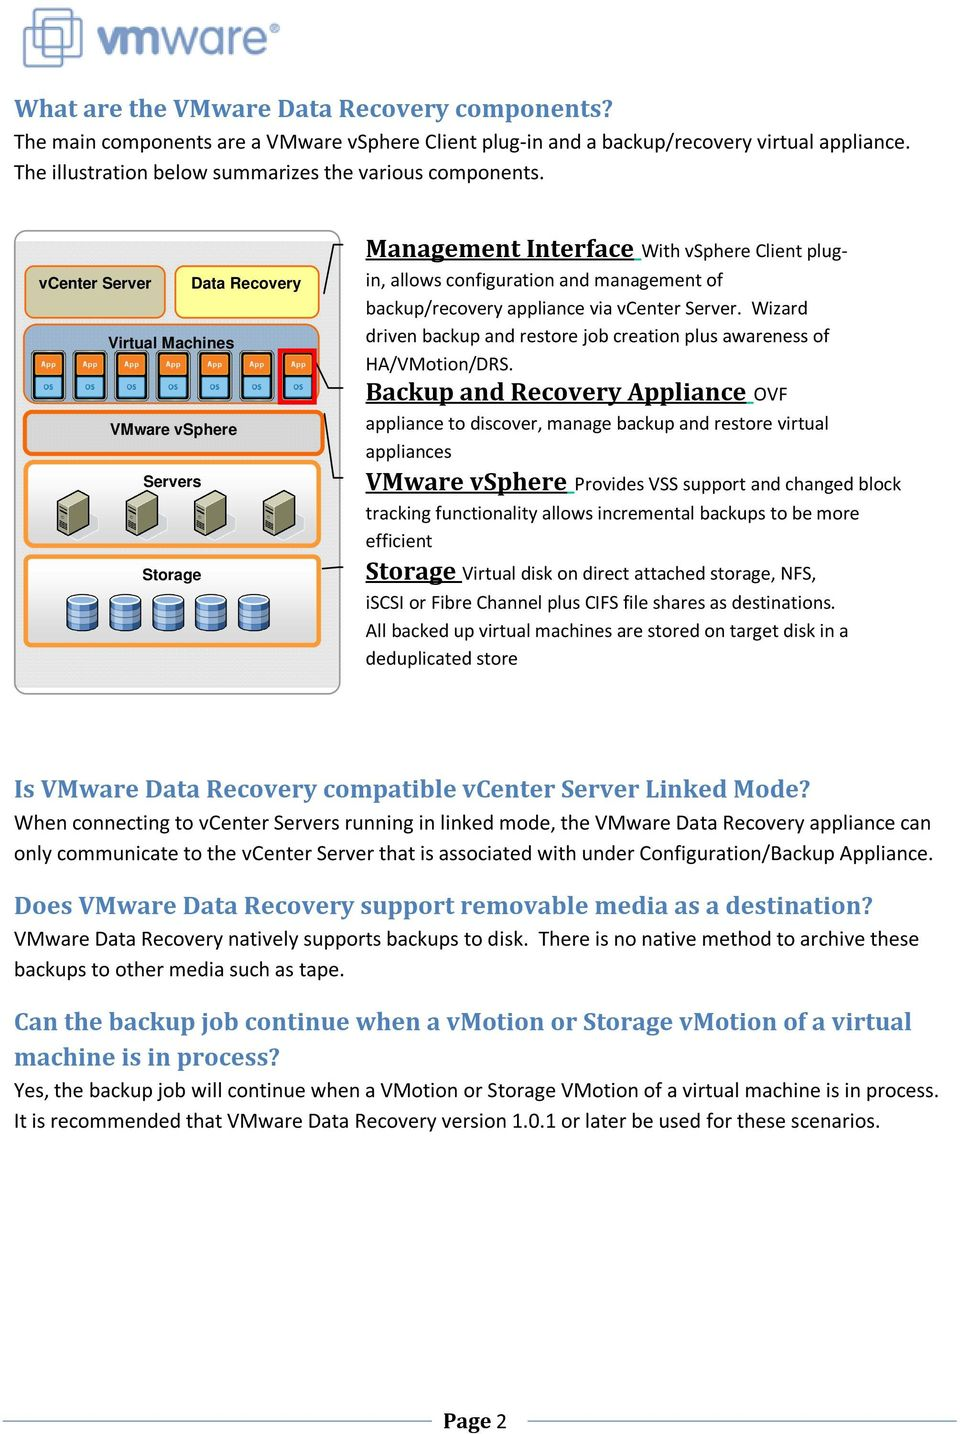 vcenter Server. Wizard driven backup and restore job creation plus awareness of HA/VMotion/DRS.